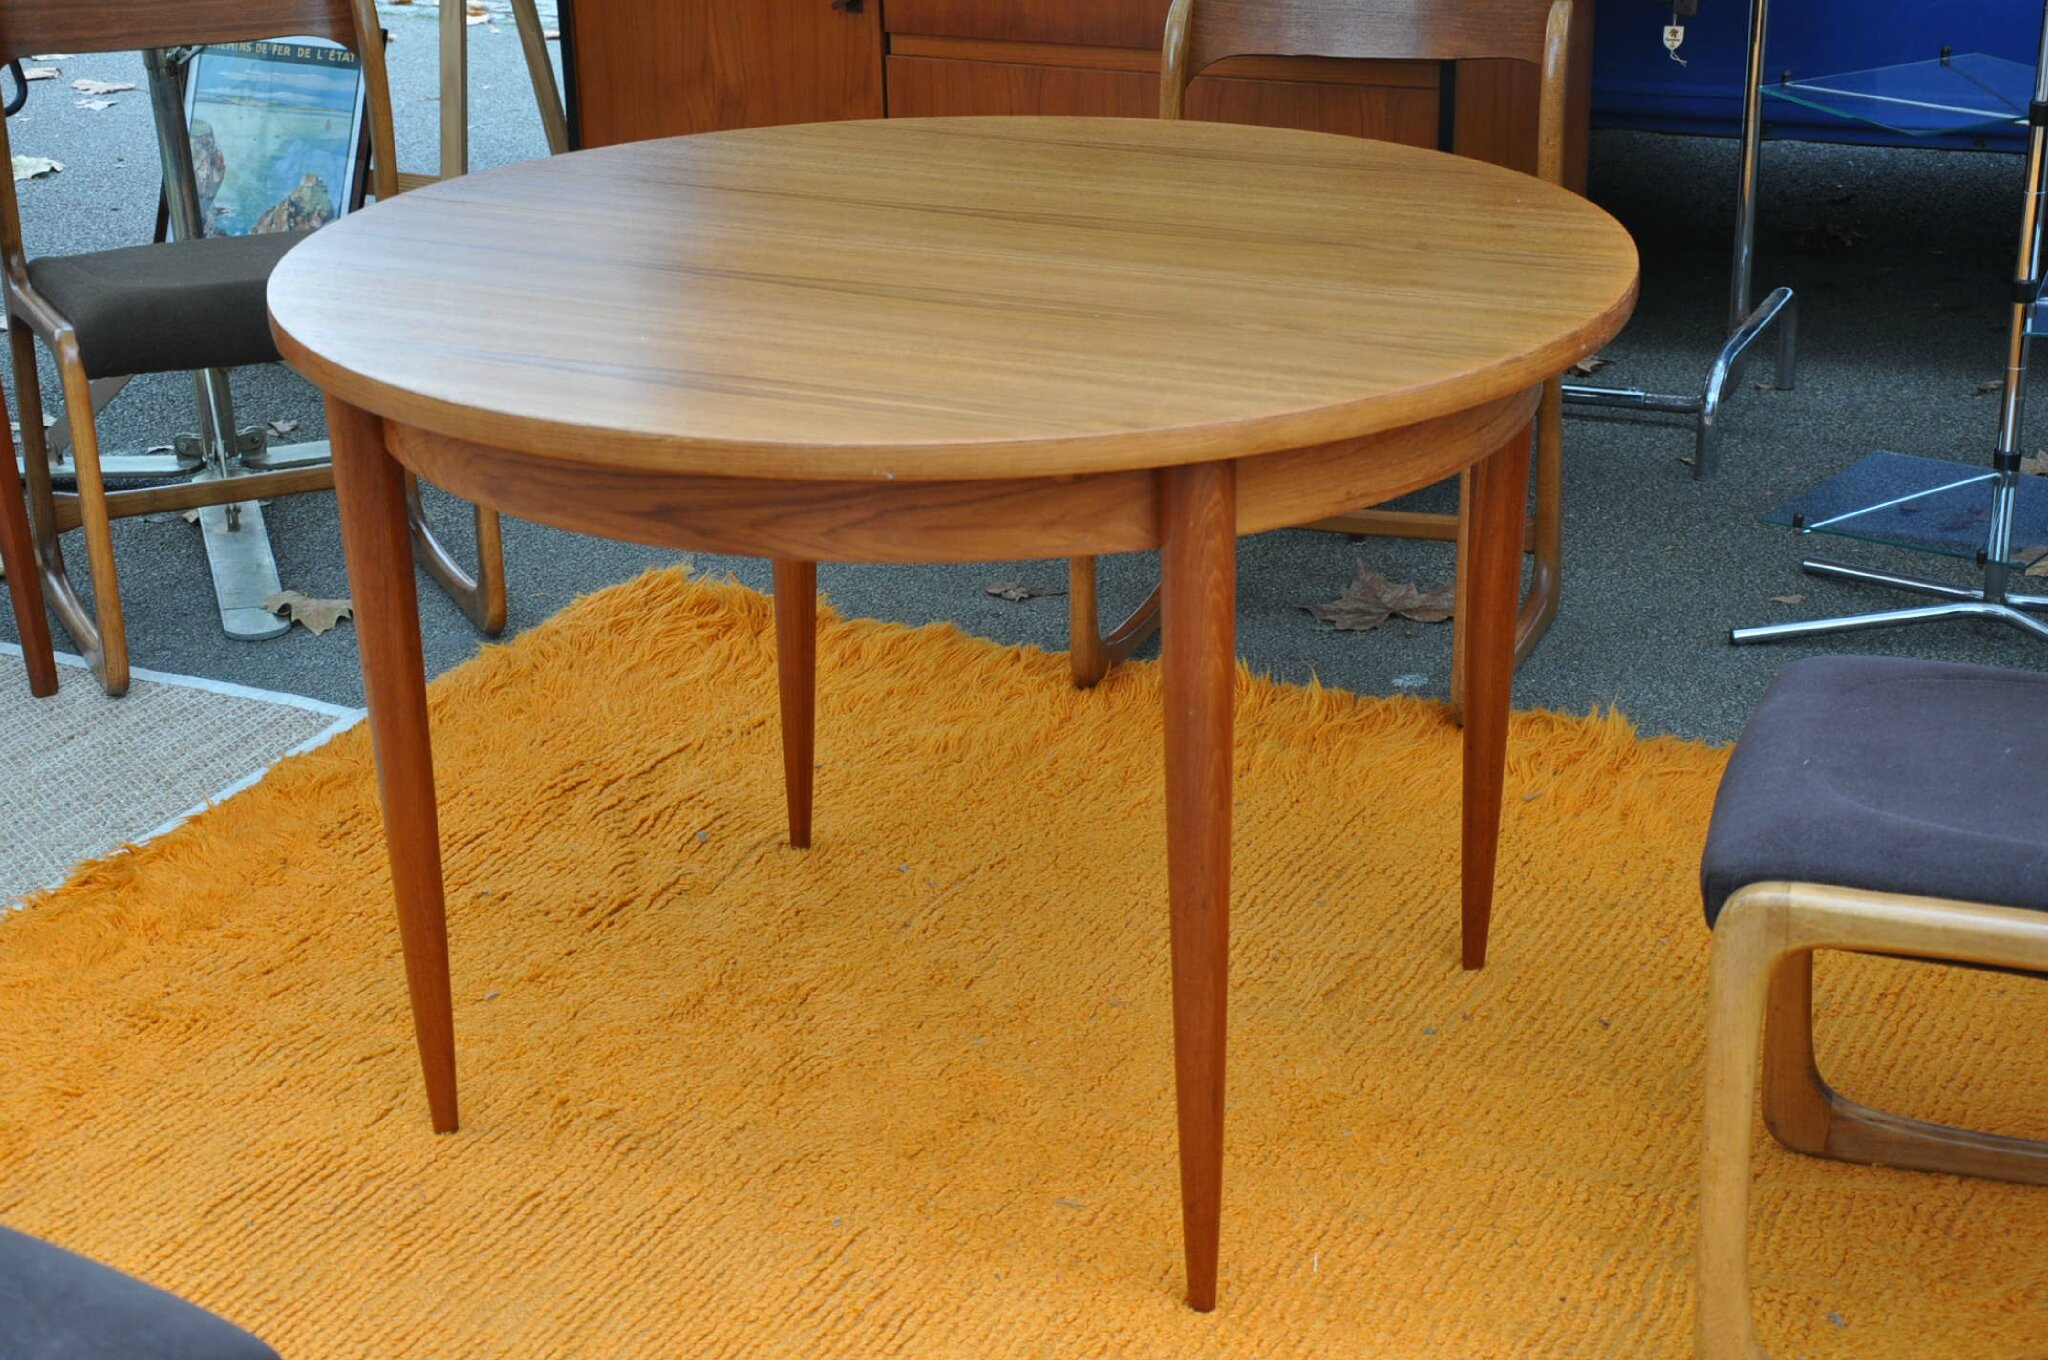 Table ronde teck de type scandinave article vendu for Table ronde rallonge scandinave